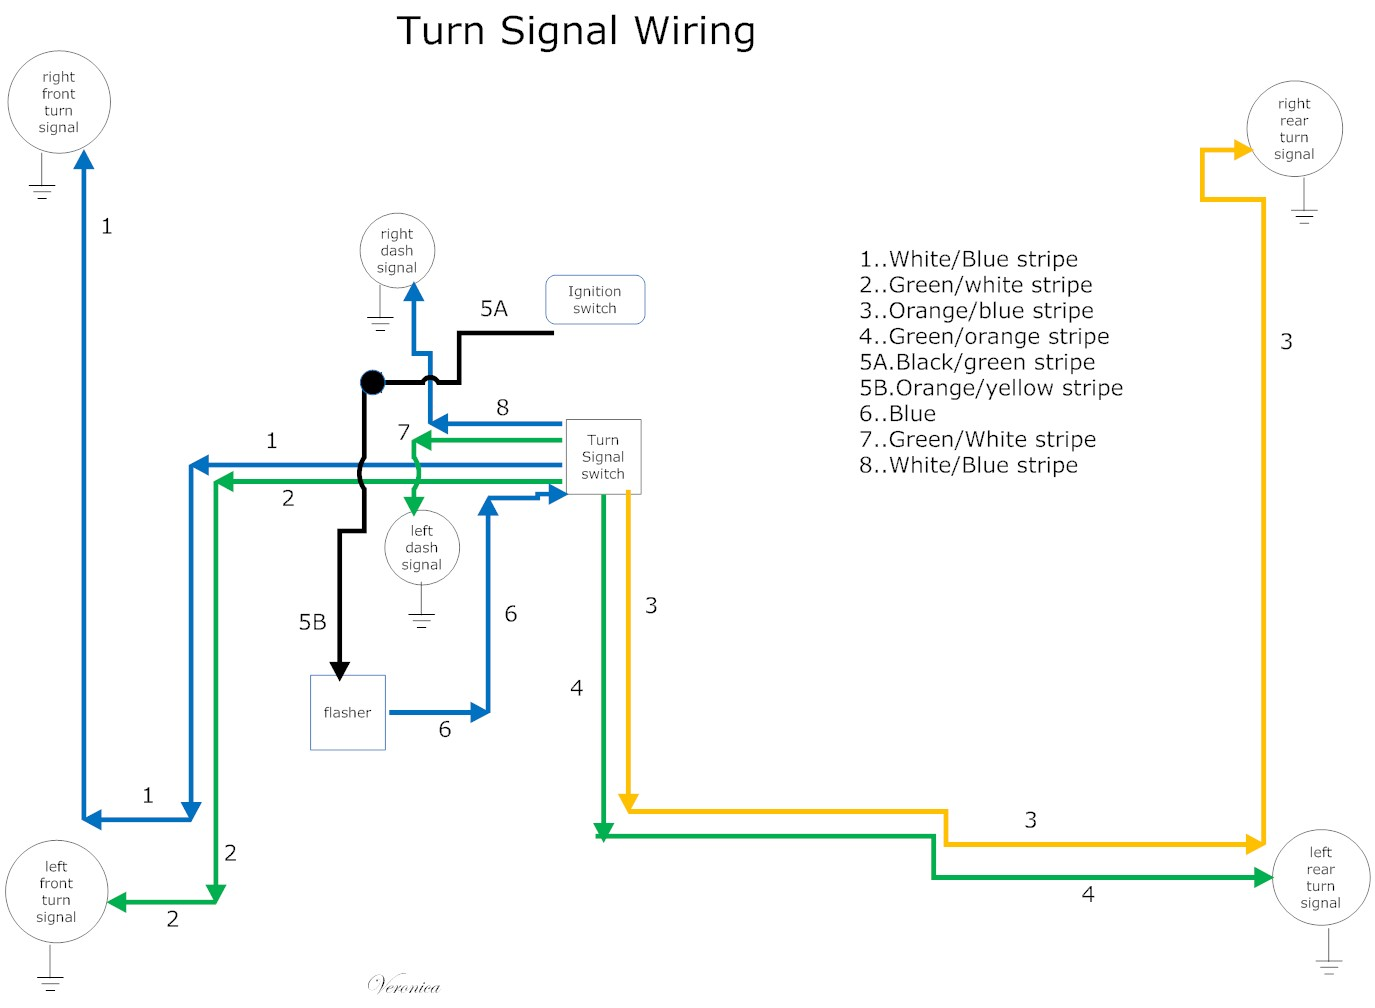 Turn+signal+Wiring turn signal switch wiring diagram motorcycle turn signal wiring 7 wire turn signal diagram at gsmx.co